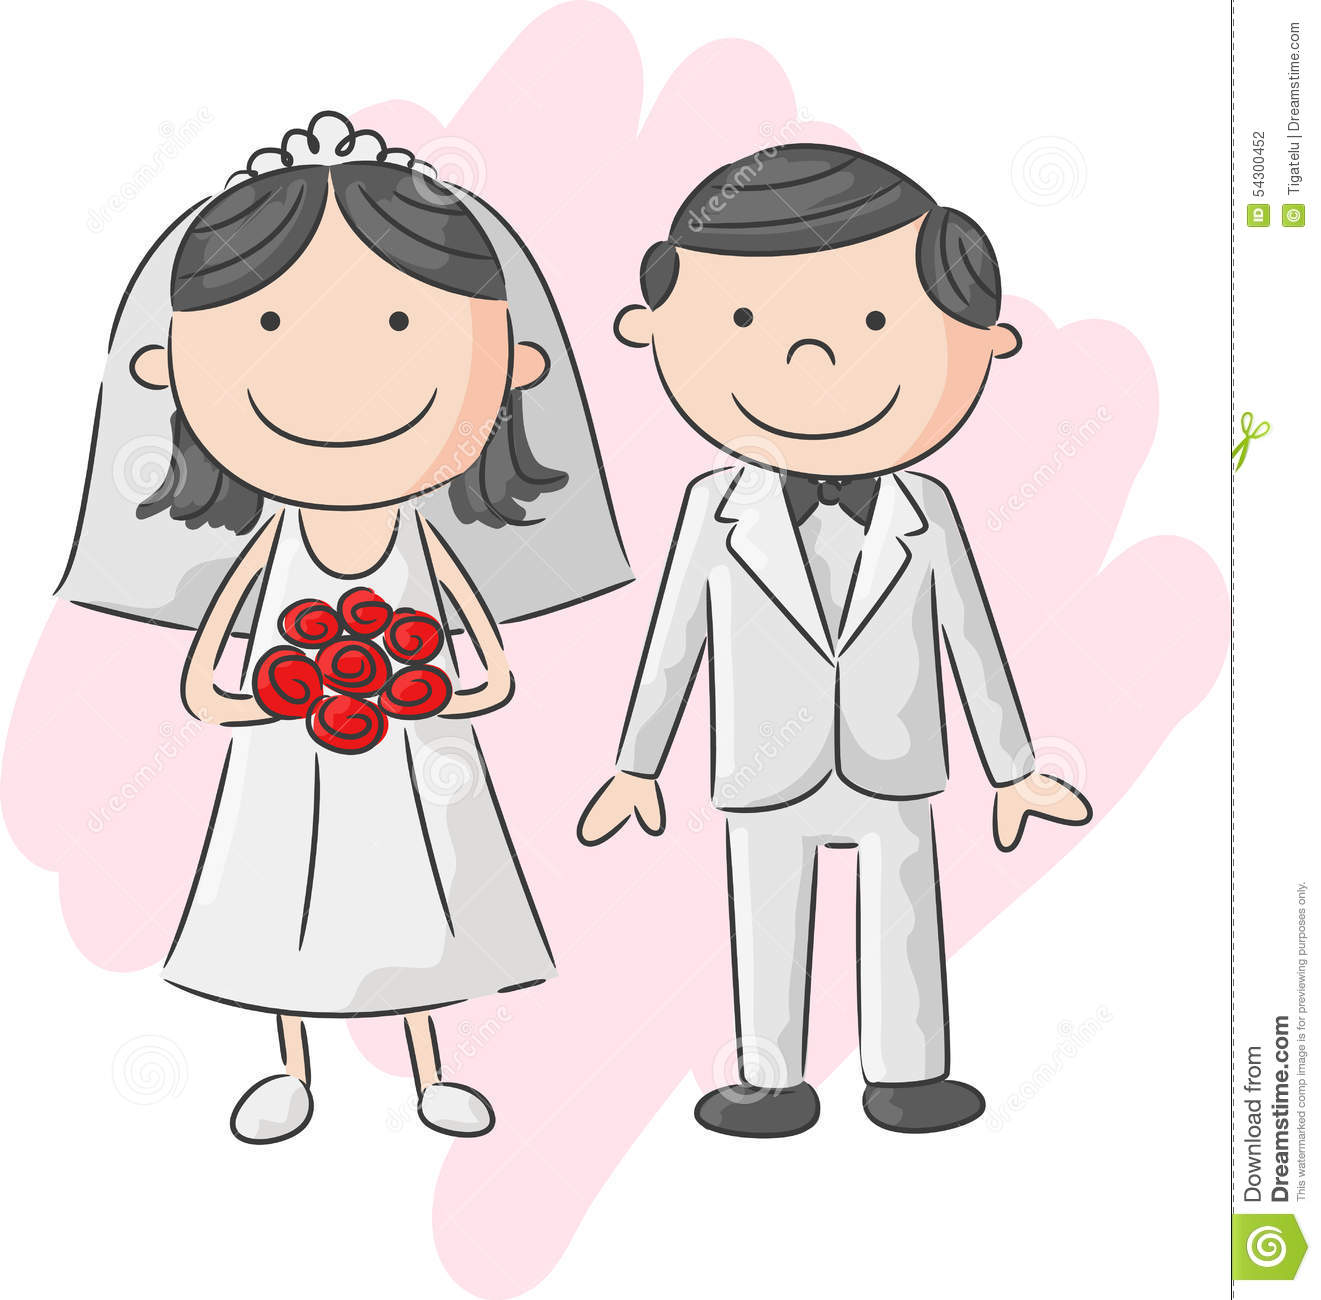 Cartoon Bride And Groom Stock Vector - Image: 54300452